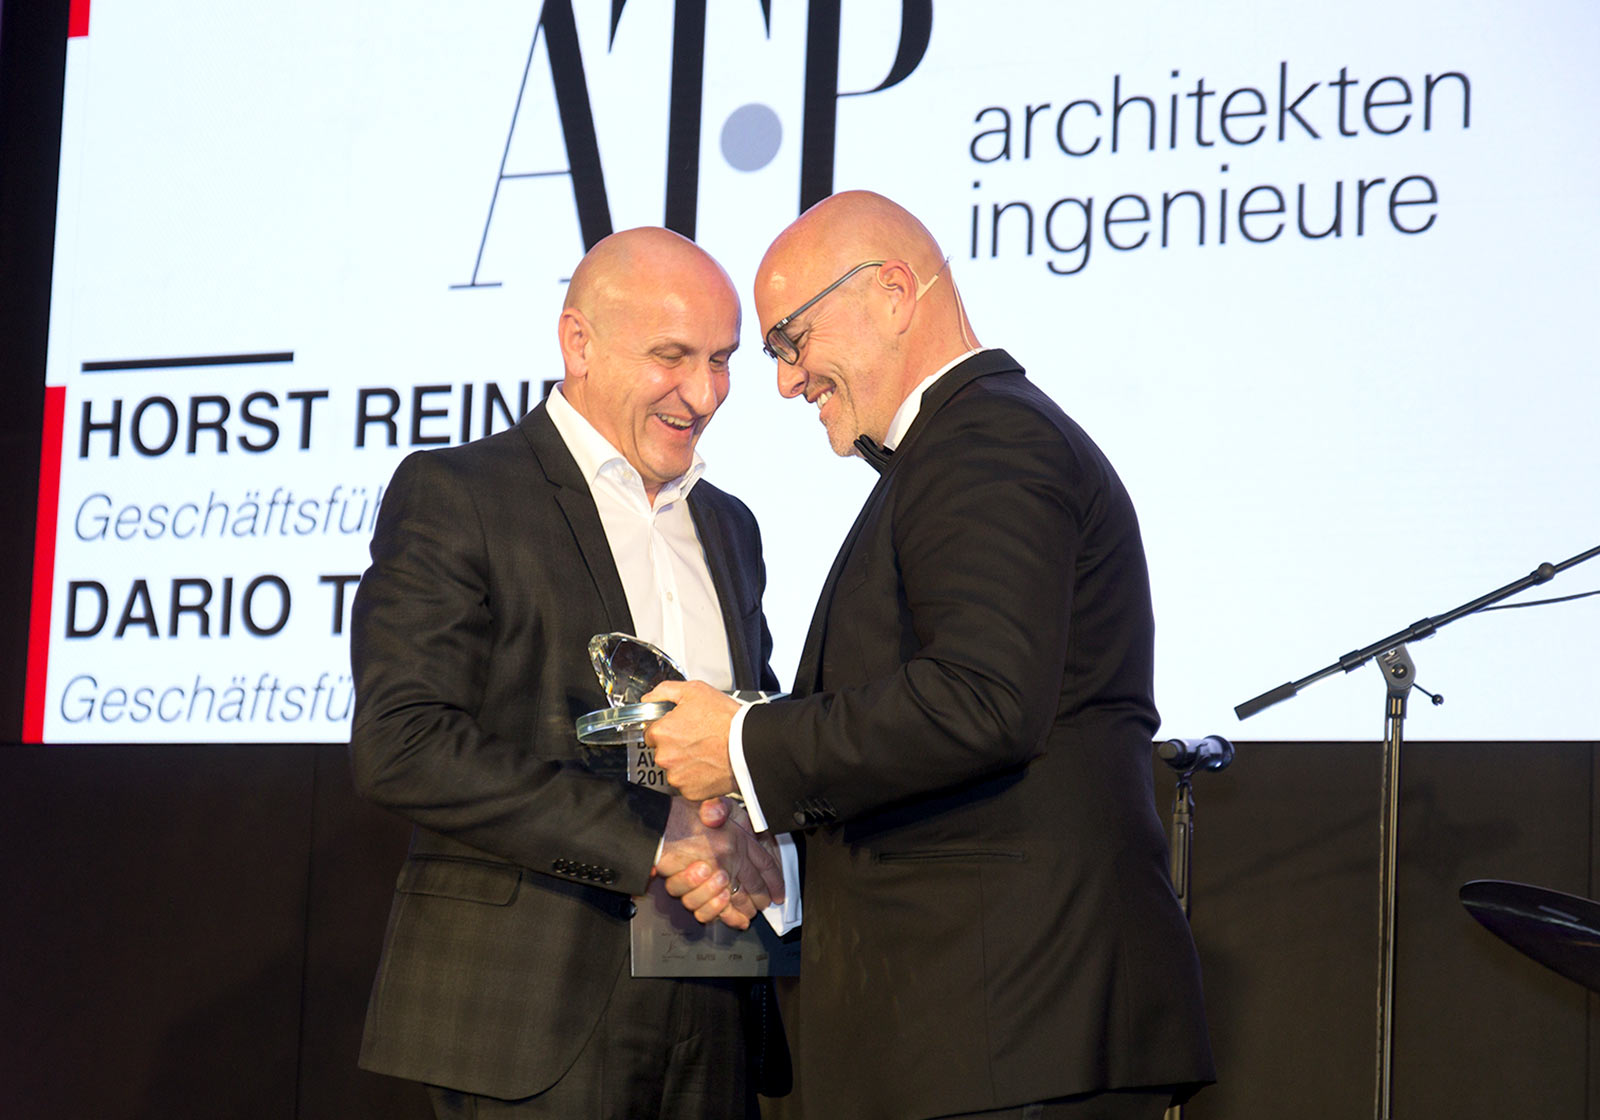 Horst Reiner (left), ATP Partner in Vienna, accepts the prize in the name of ATP architects engineers. Photo: EUREB Institute/Philip Miram